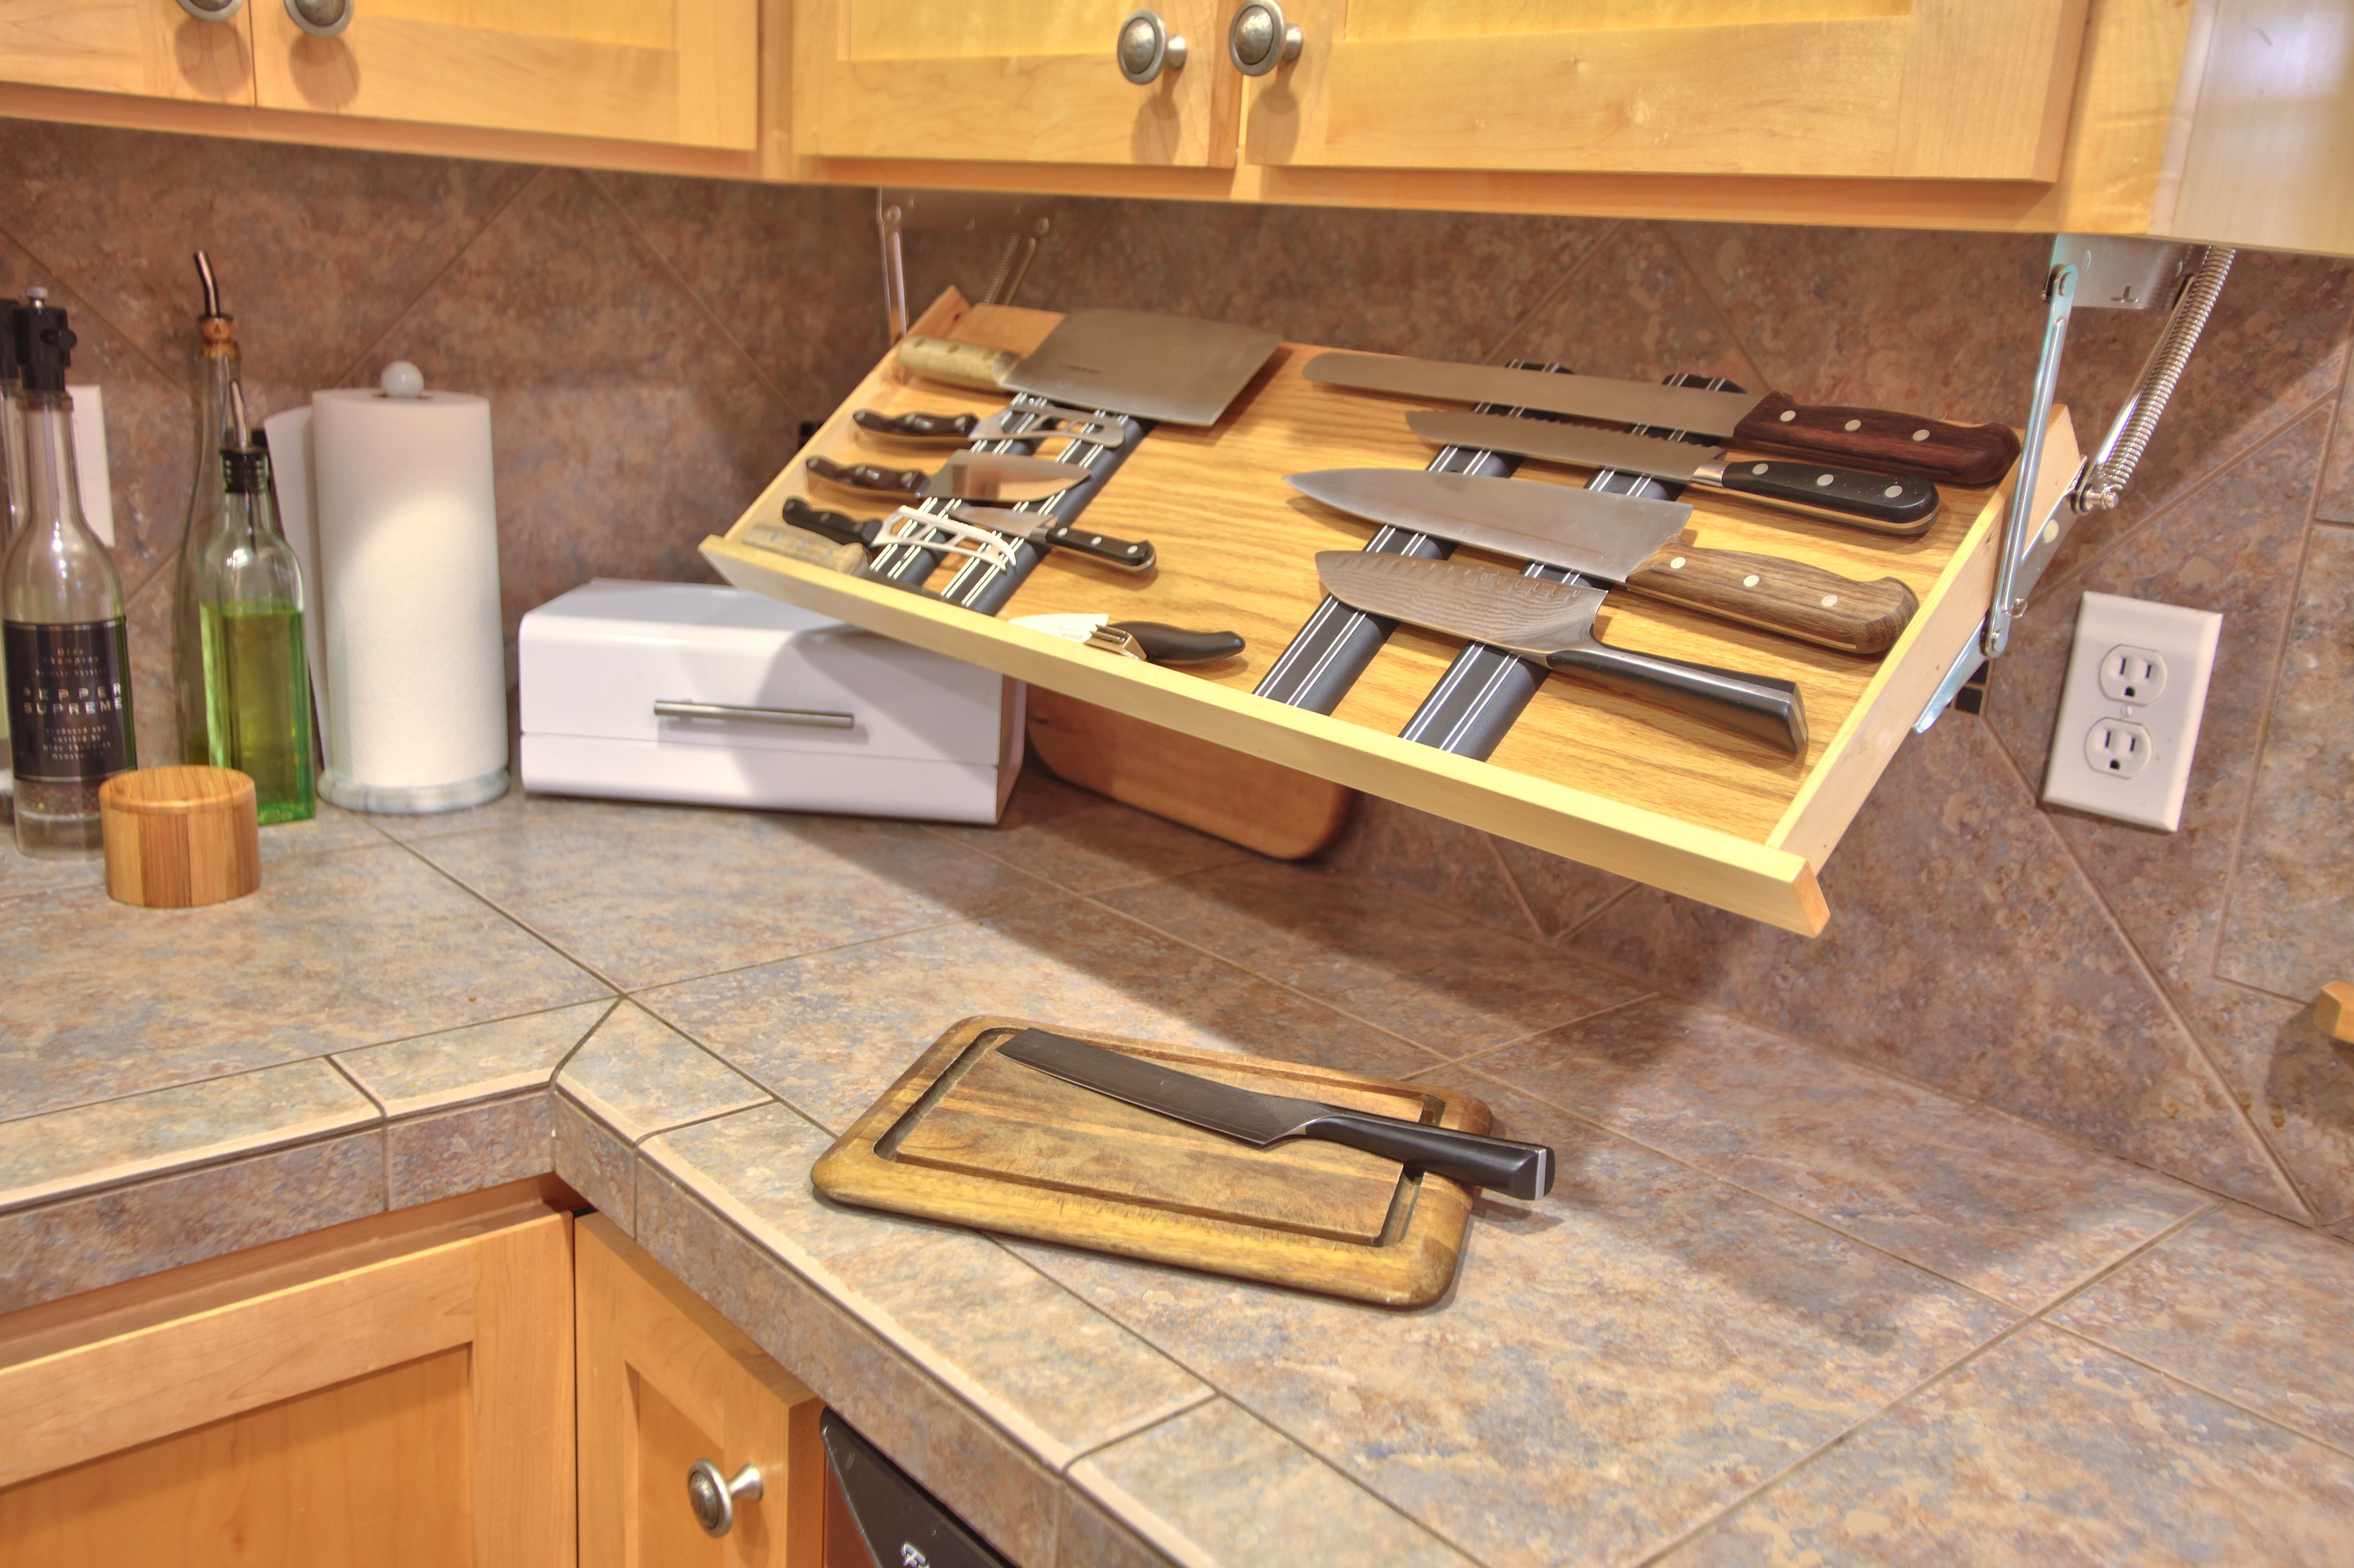 Get The Knife Out Under Counter Drop Down Knife Storage Kitchen Knife Storage Clever Kitchen Storage Kitchen Cabinet Storage